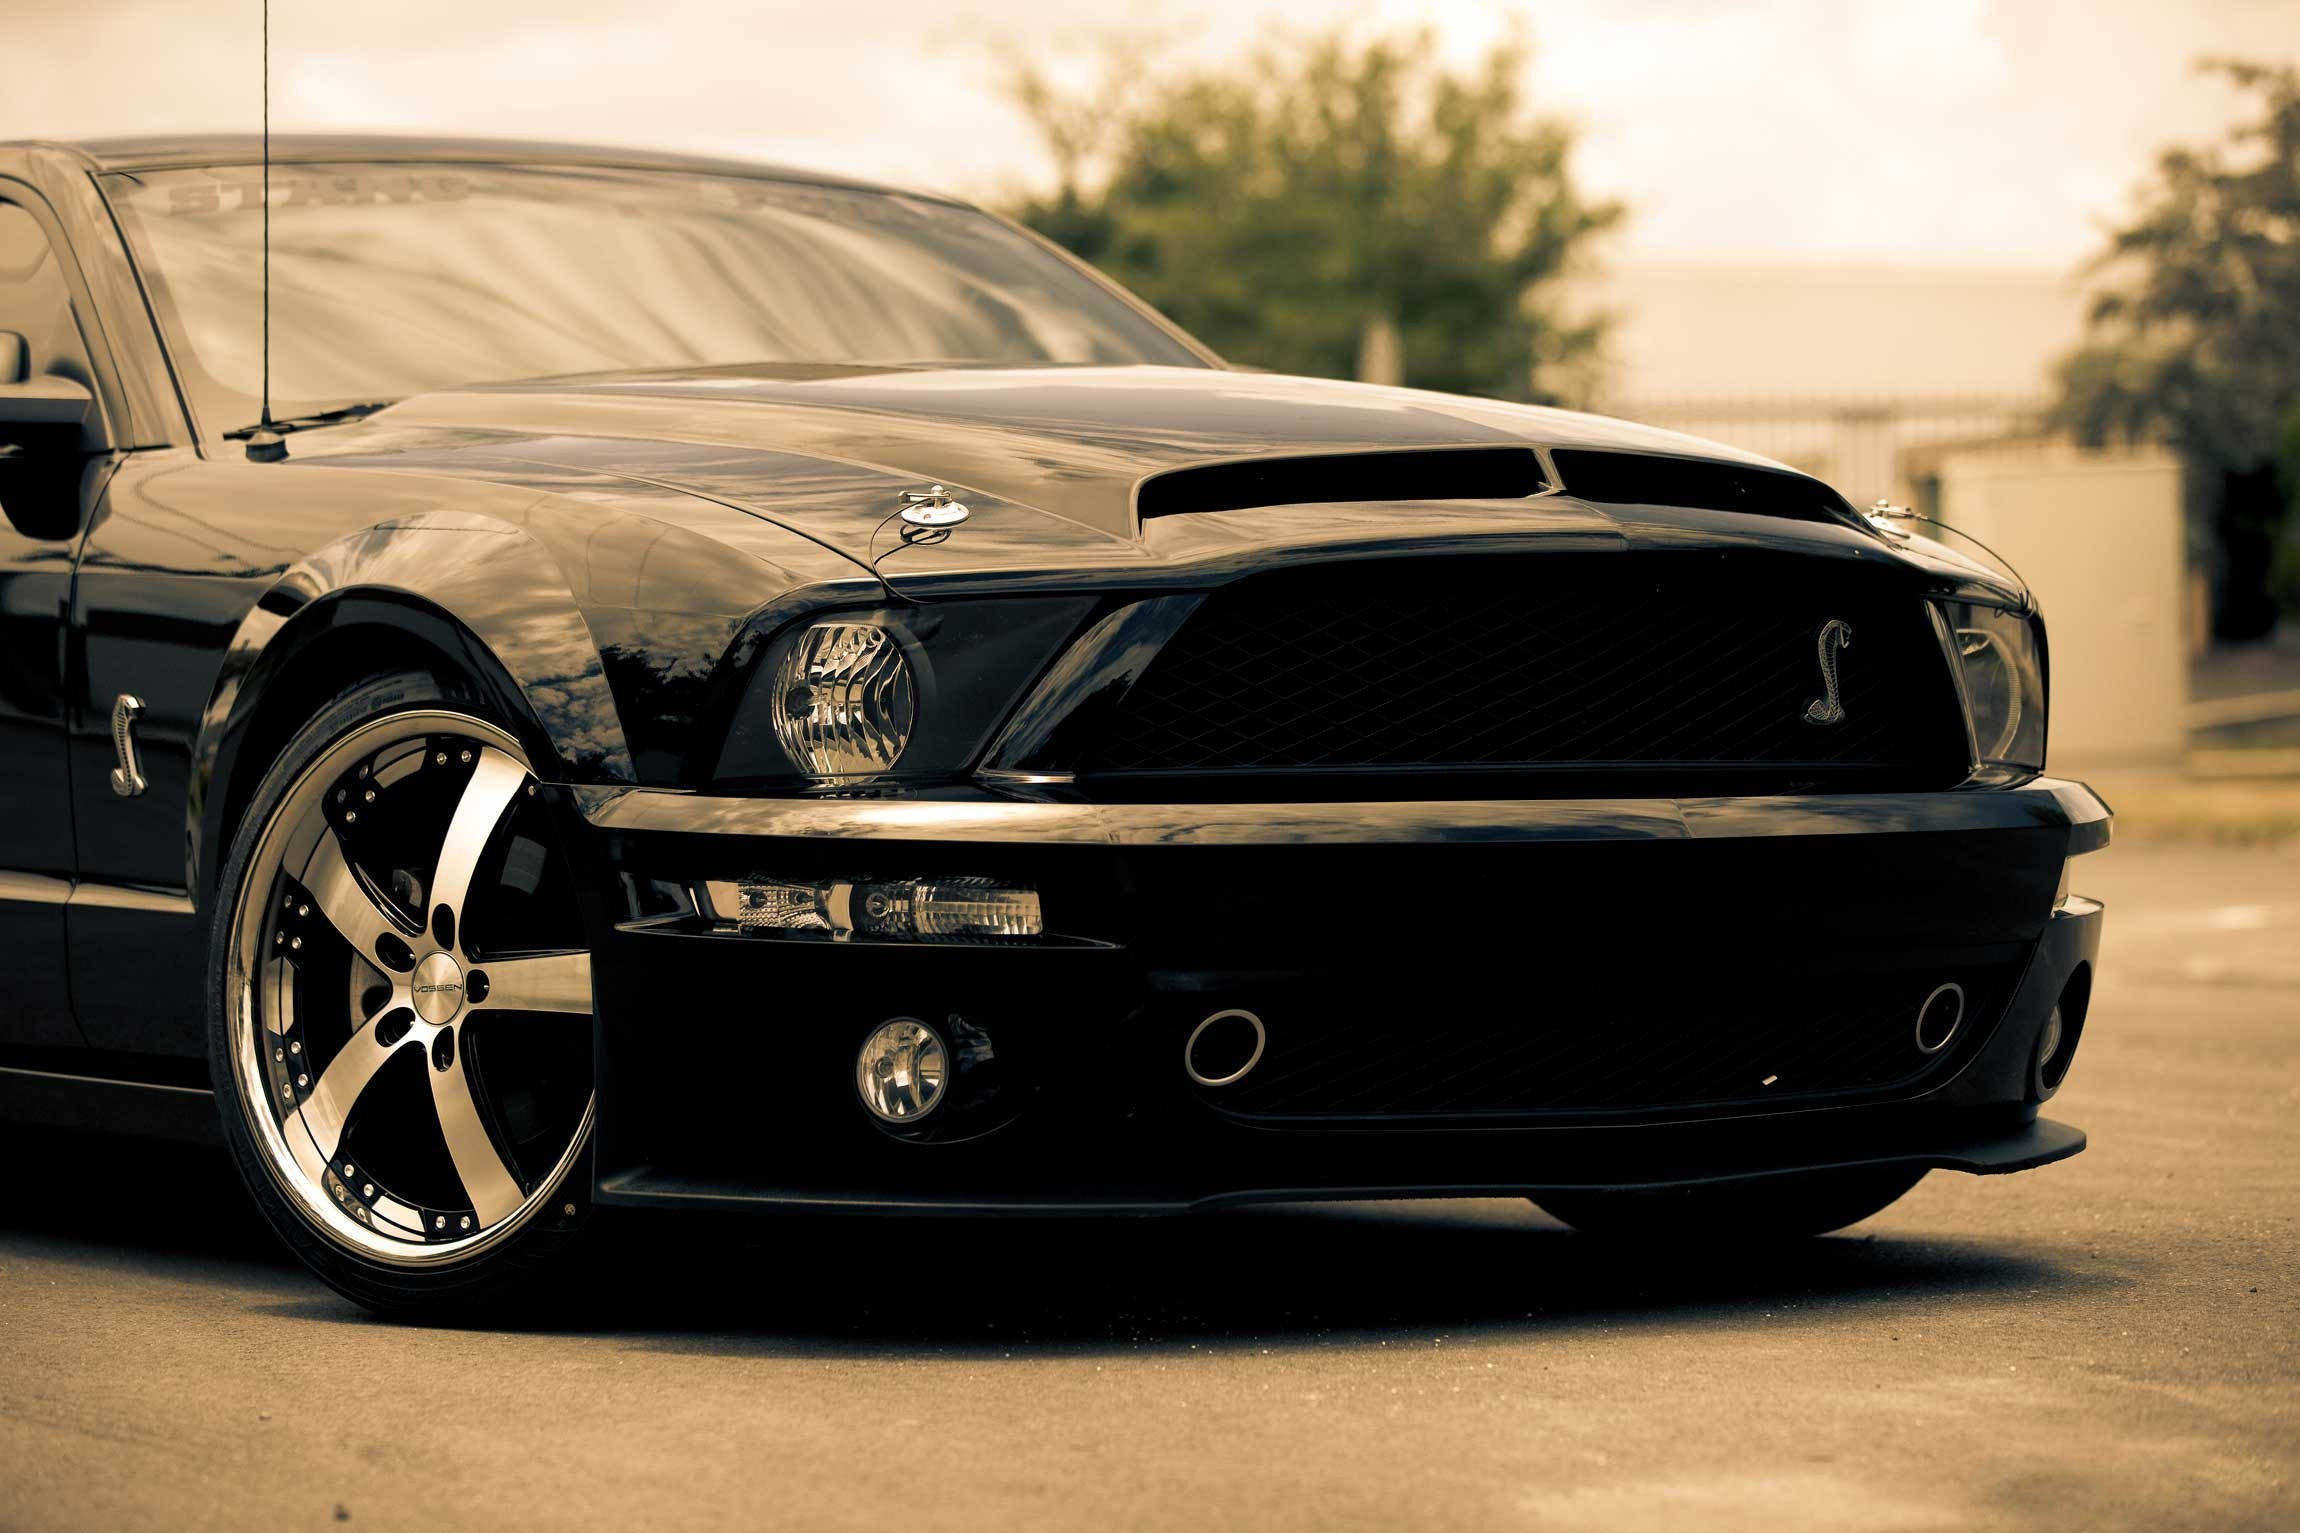 car Muscle Cars Ford Mustang GT Ford Mustang Wallpapers HD